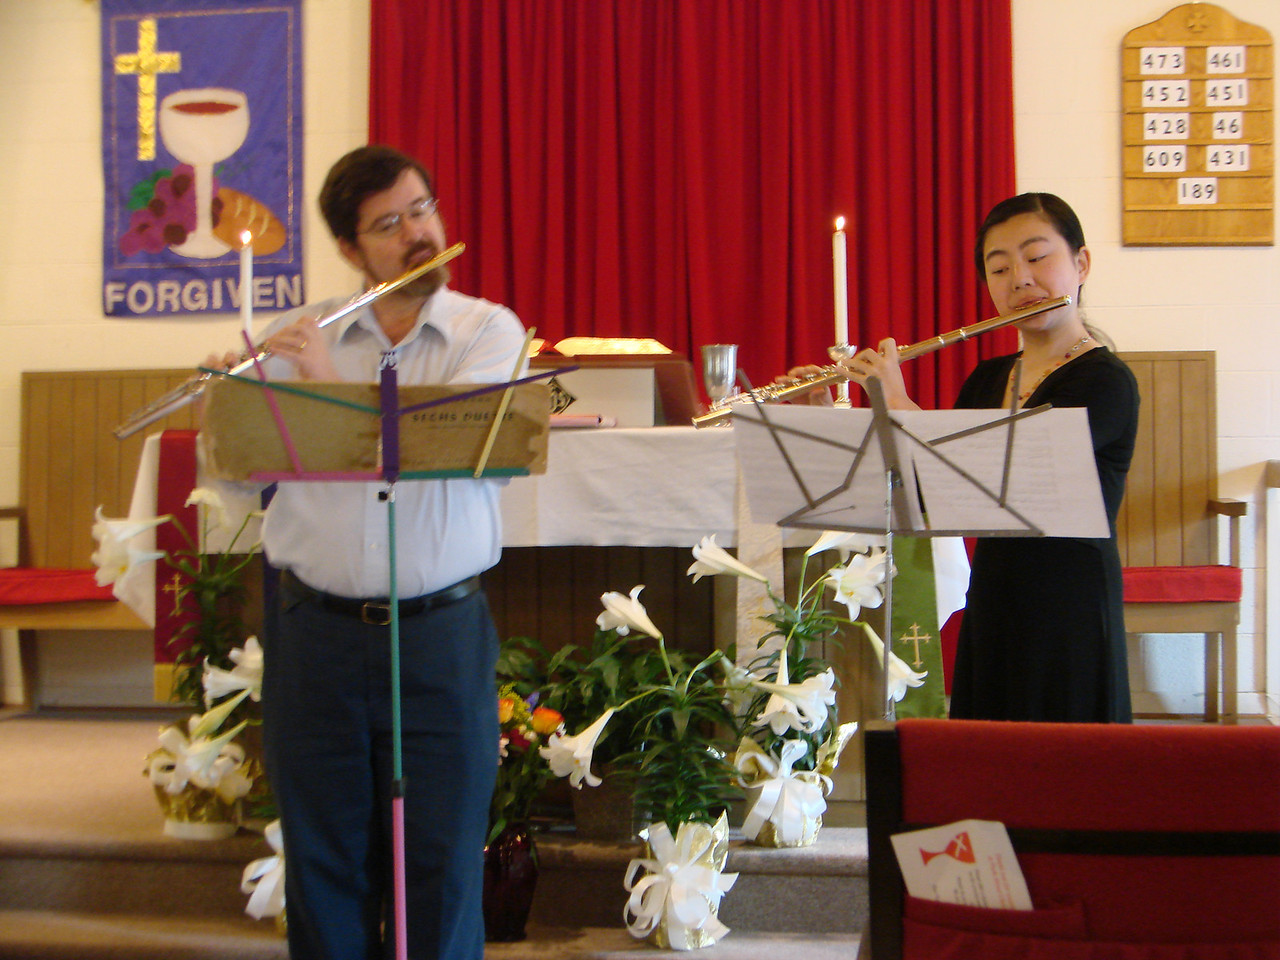 Alan Cox and his student, Jiahao Wang, share their gift of music